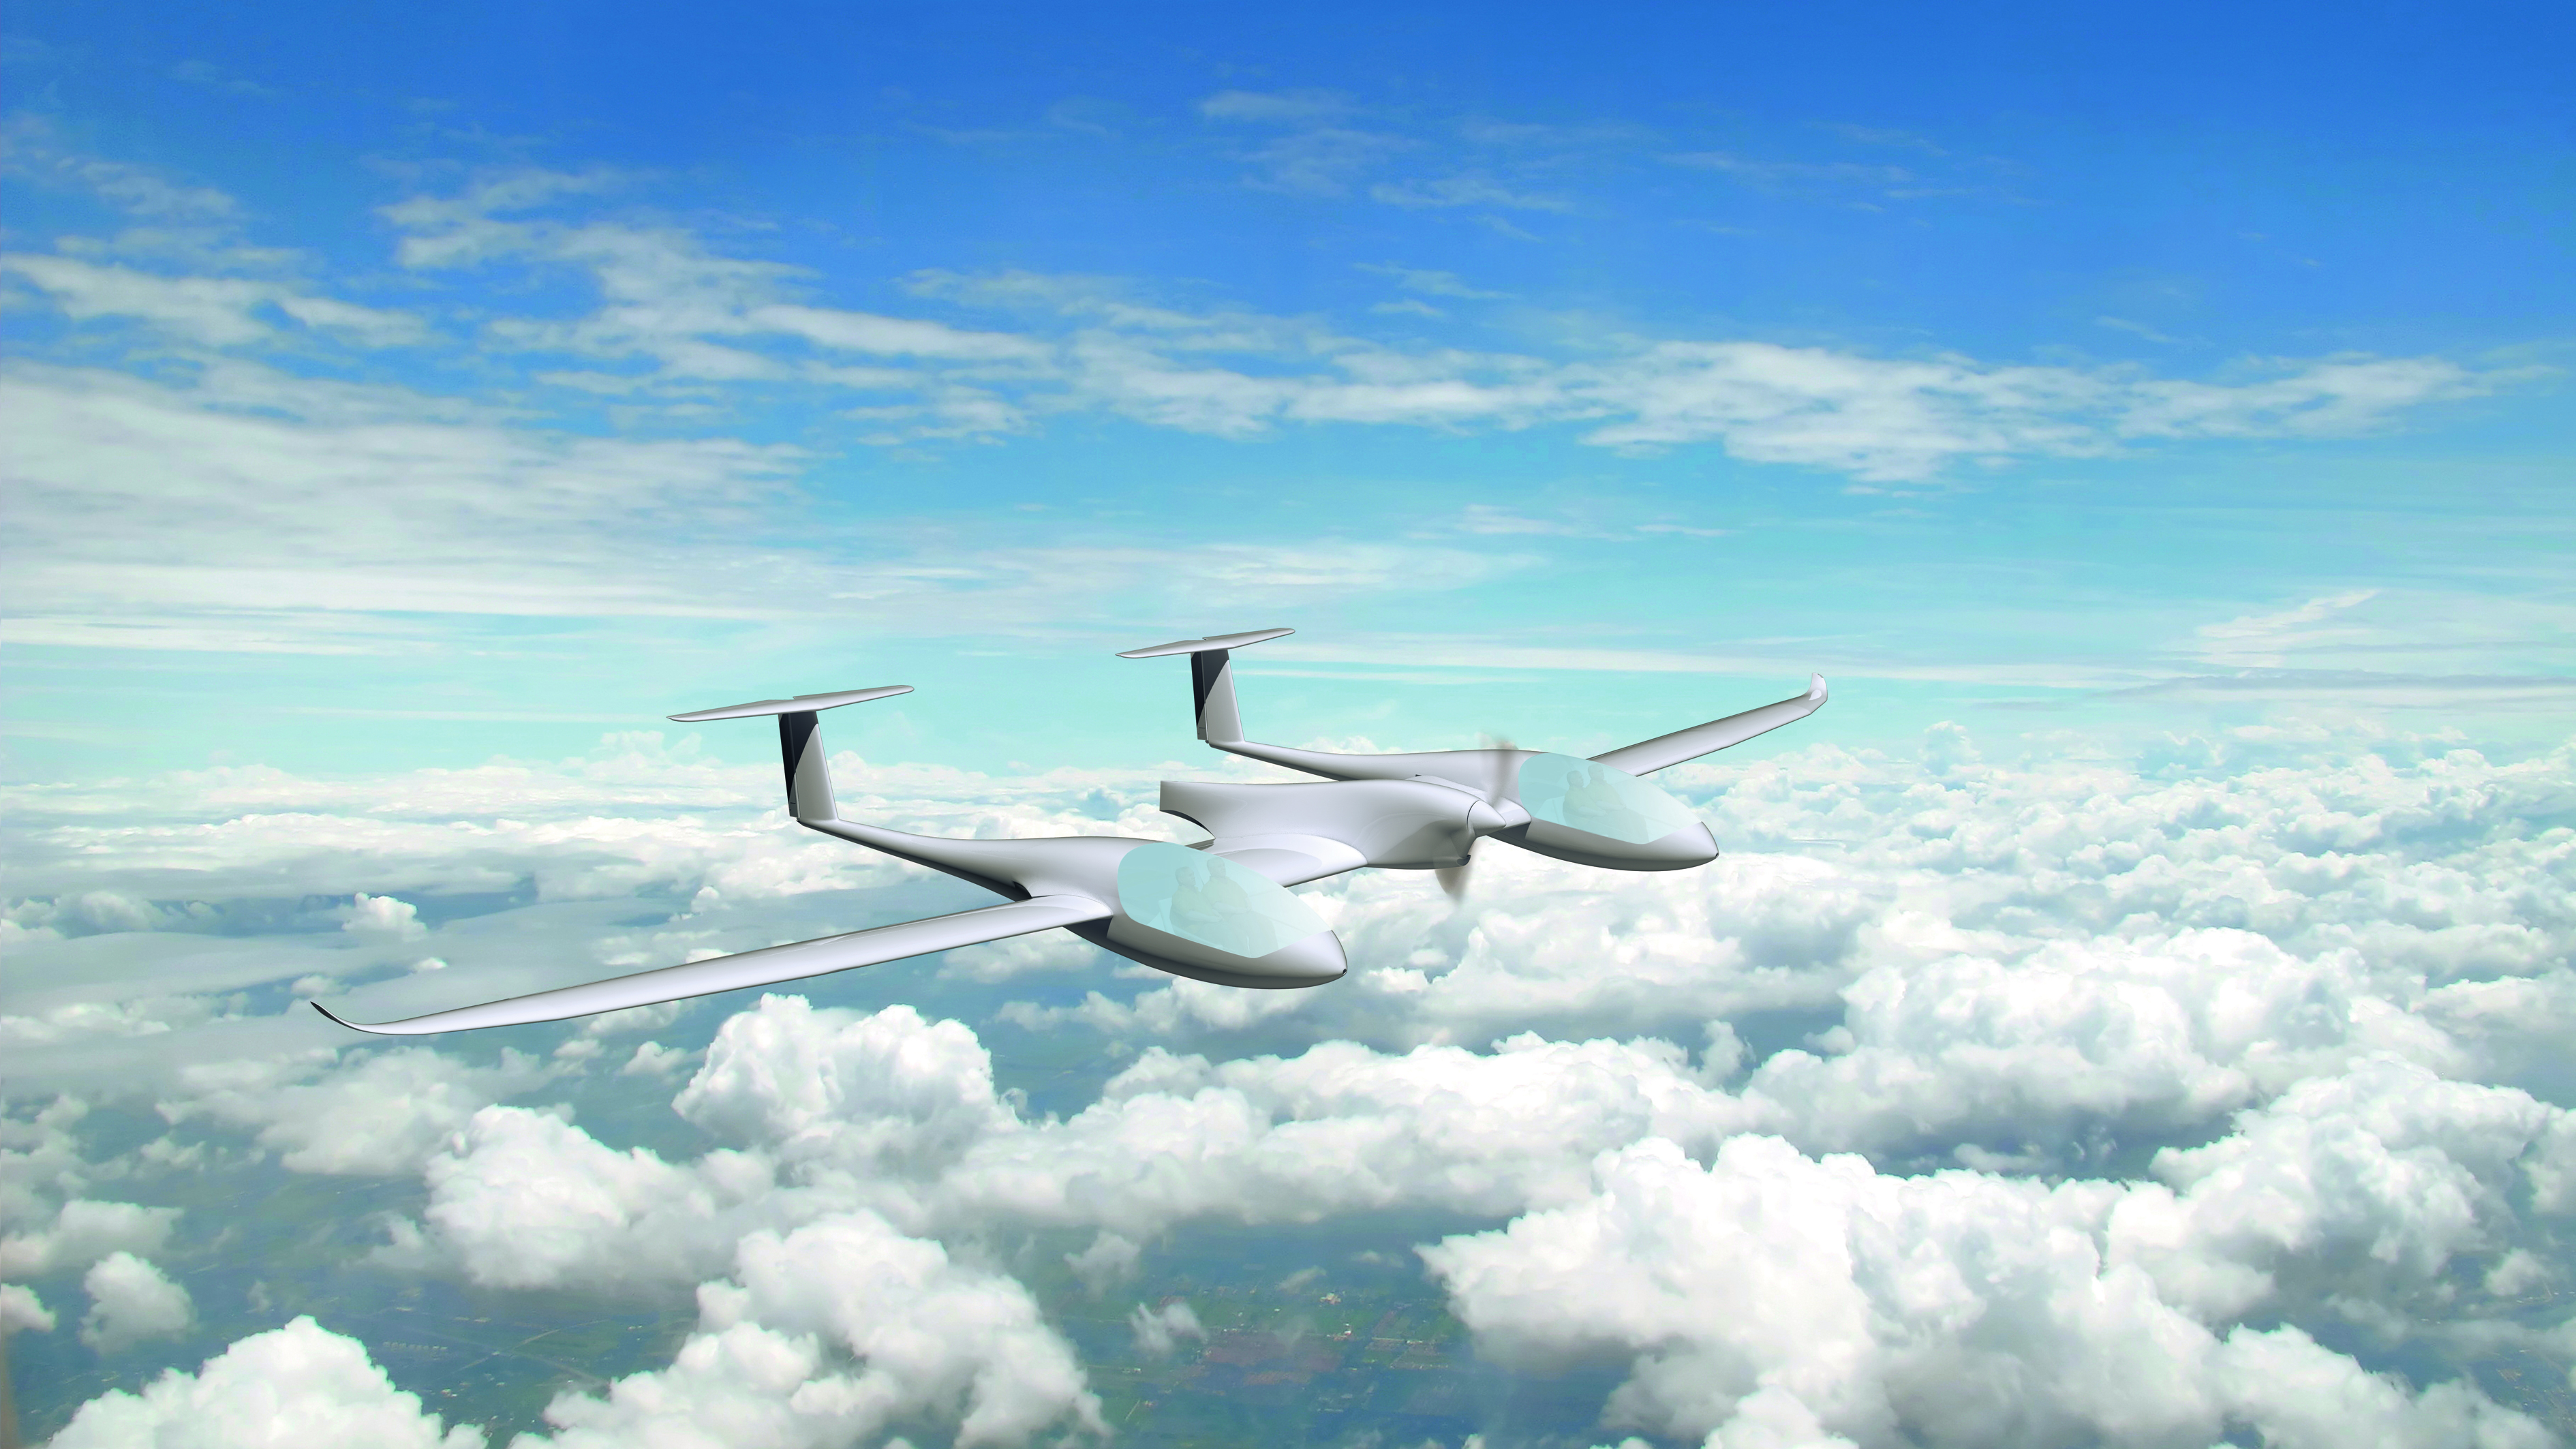 The HY4 makes cleaner, quieter, more energy-efficient and safer flight possible